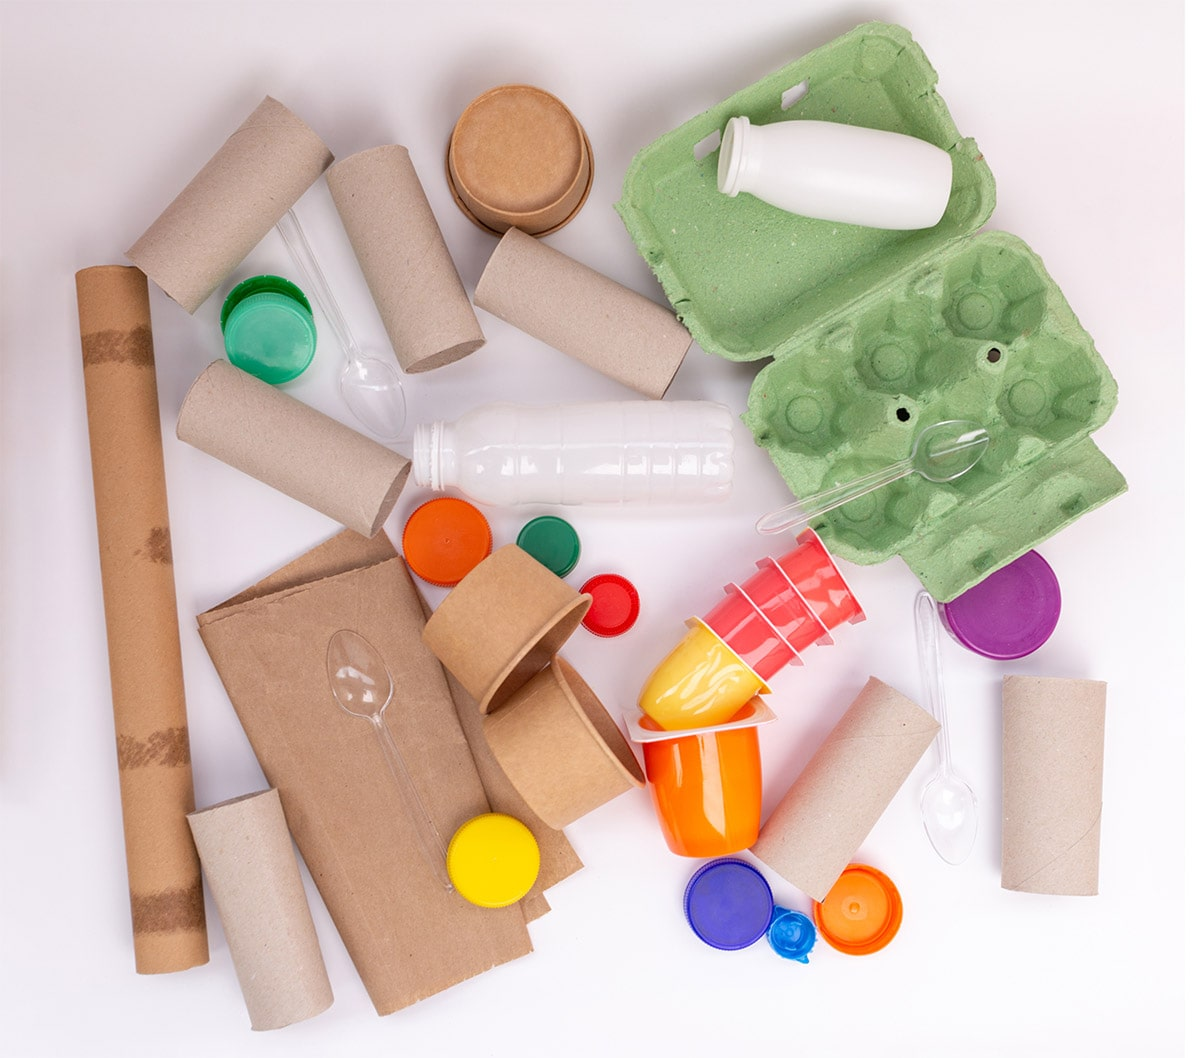 Paper, plastic, and cardboard recyclables in a pile.